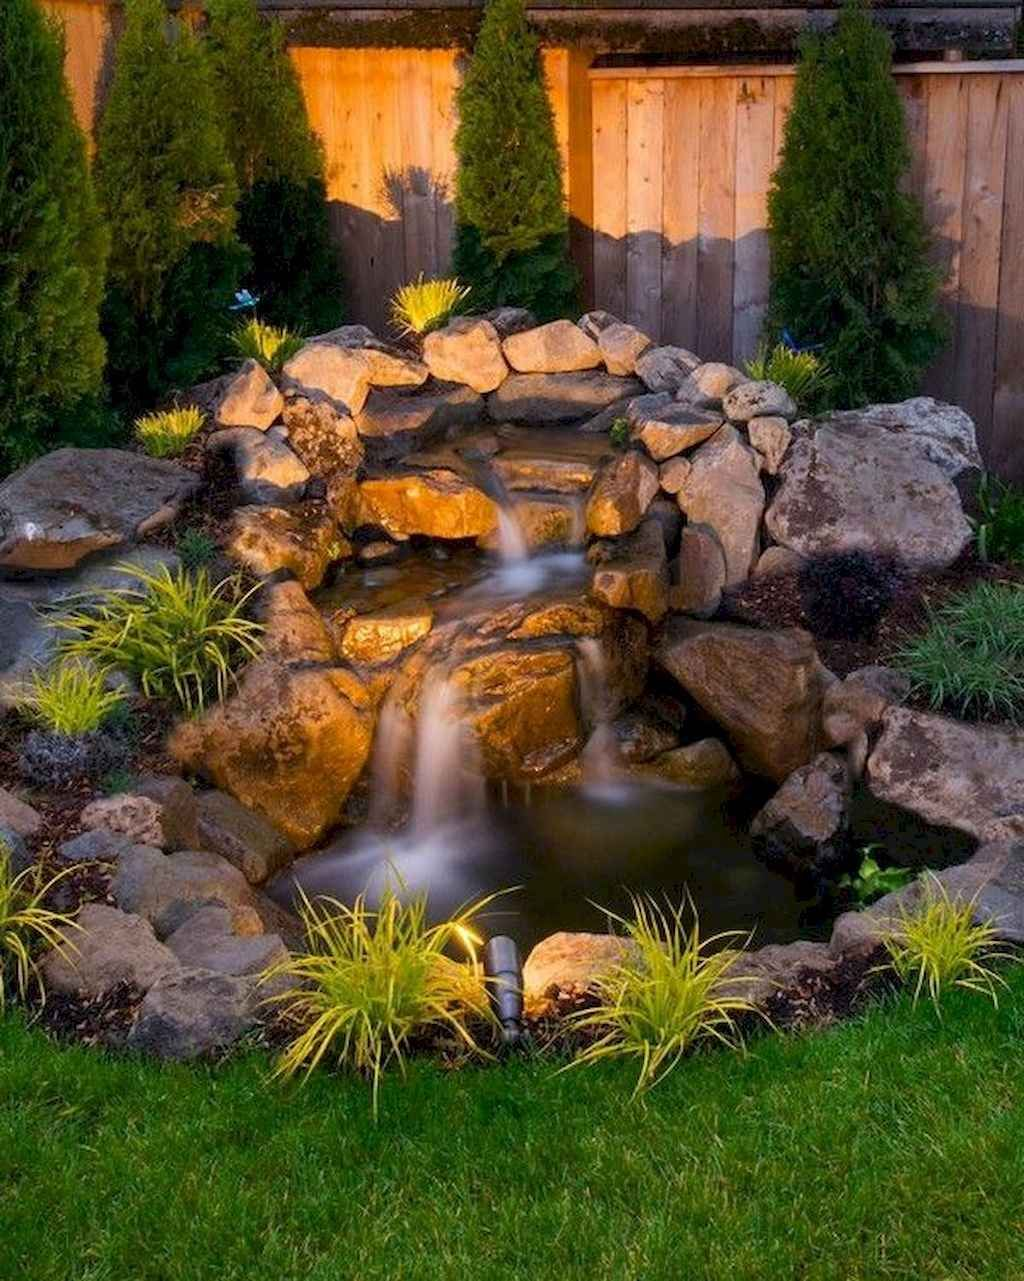 Gorgeous 55 Beautiful Backyard Ponds And Waterfalls Garden Ideas Https Domakeover Com 55 Be Waterfalls Backyard Fountains Backyard Small Backyard Landscaping